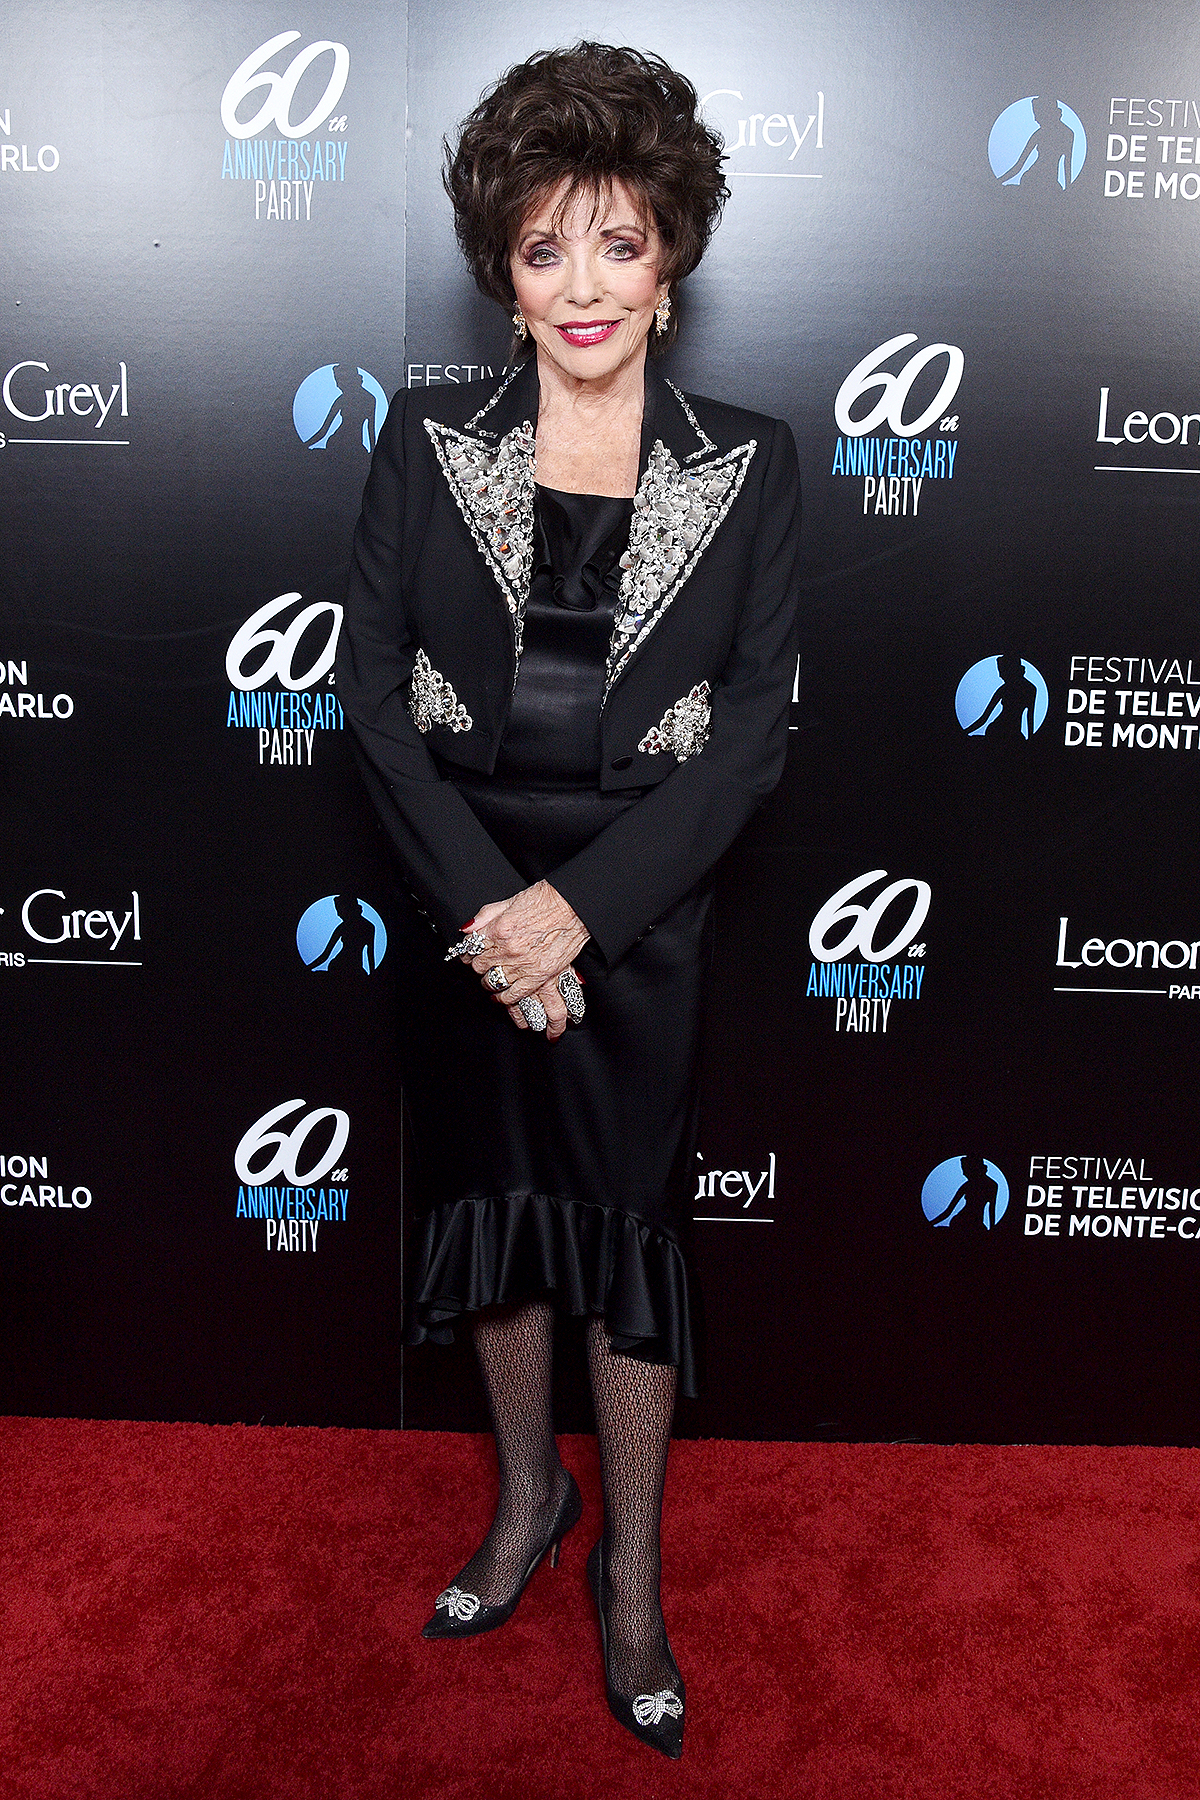 Joan Collins attends the 60th Anniversary Party For The Monte-Carlo TV Festival at Sunset Tower Hotel on February 05, 2020